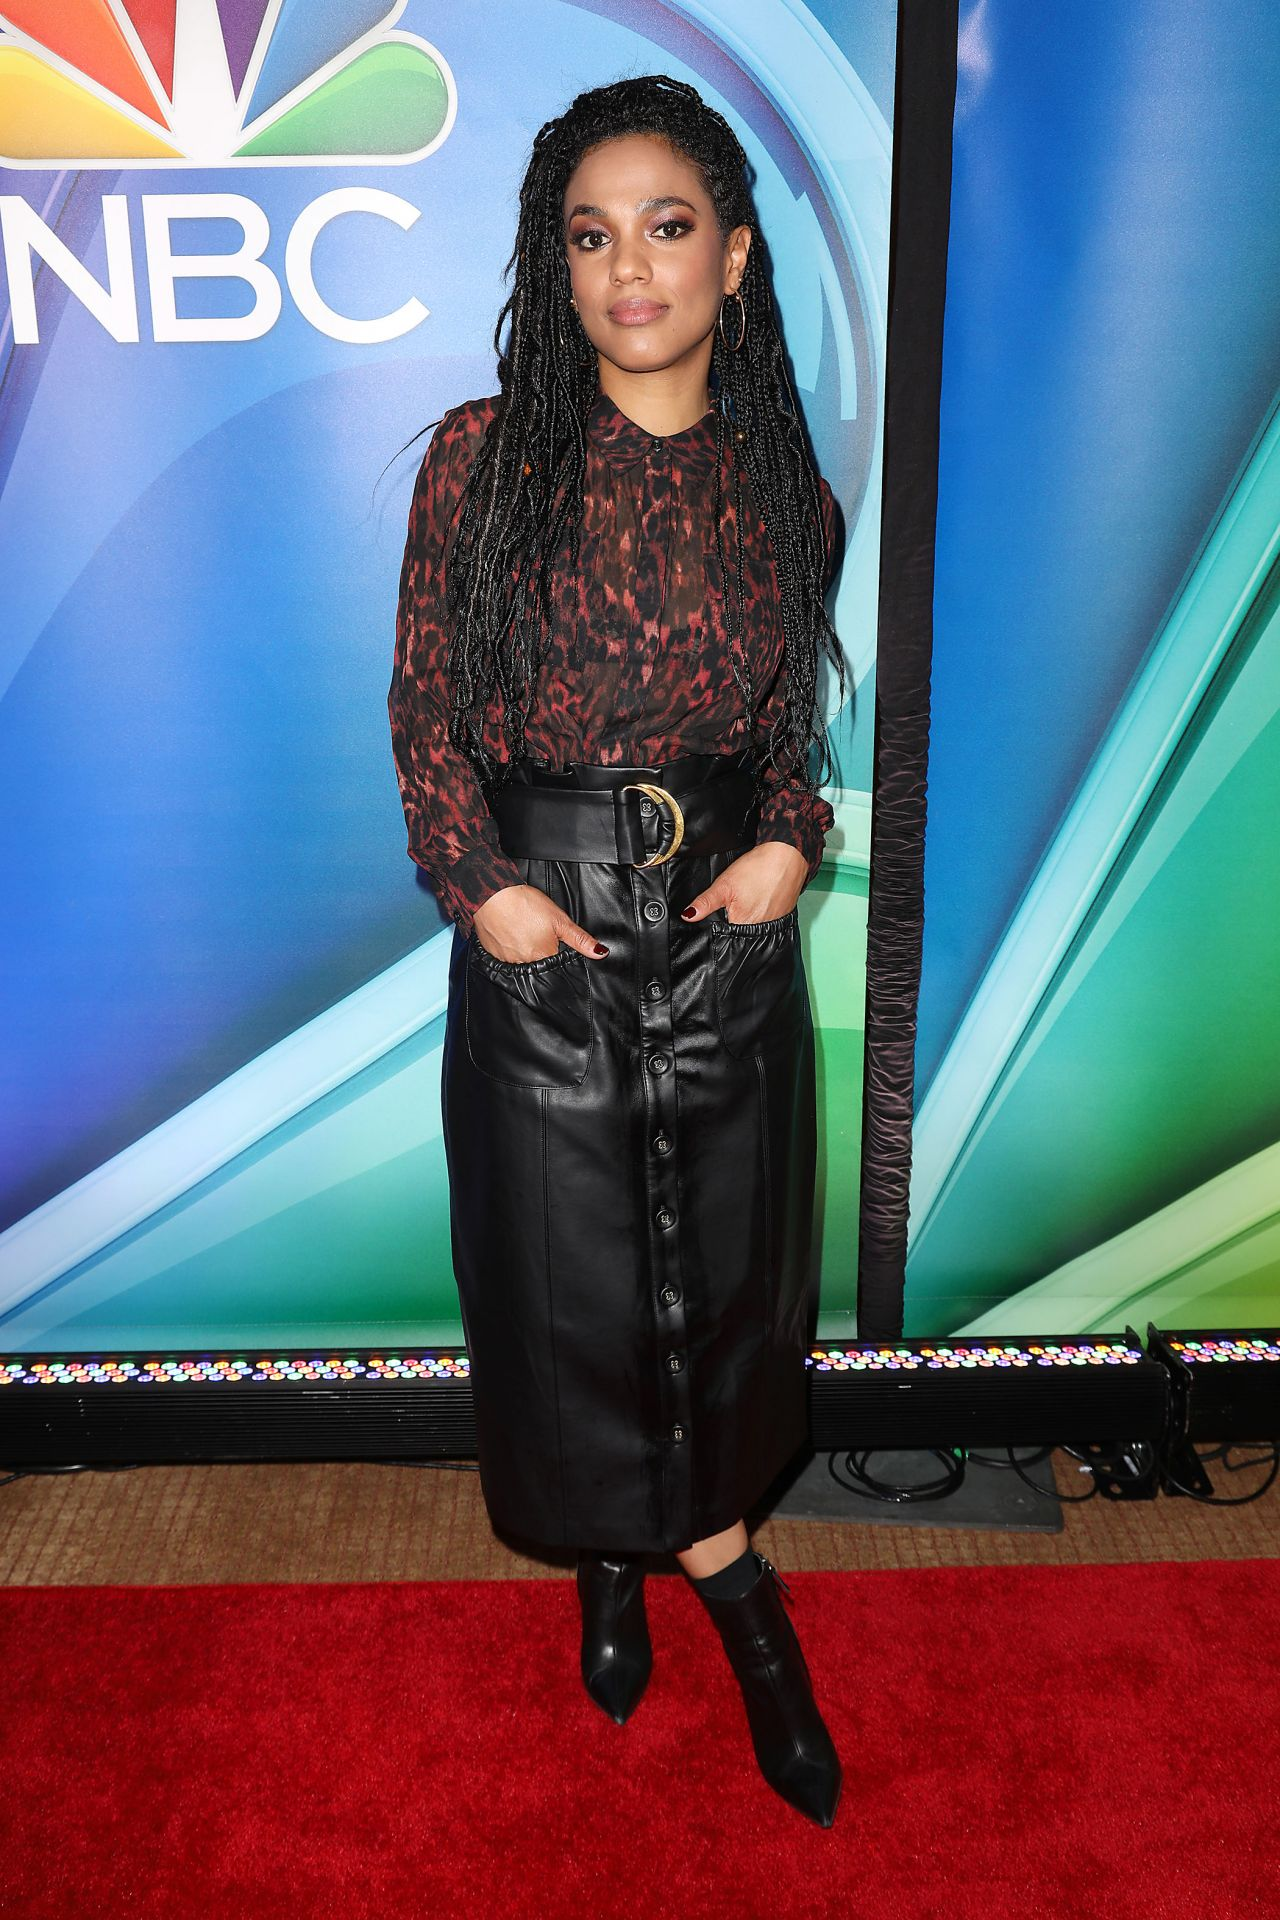 Freema Agyeman Nbc S Ny Mid Season Press Junket 01 24 2019